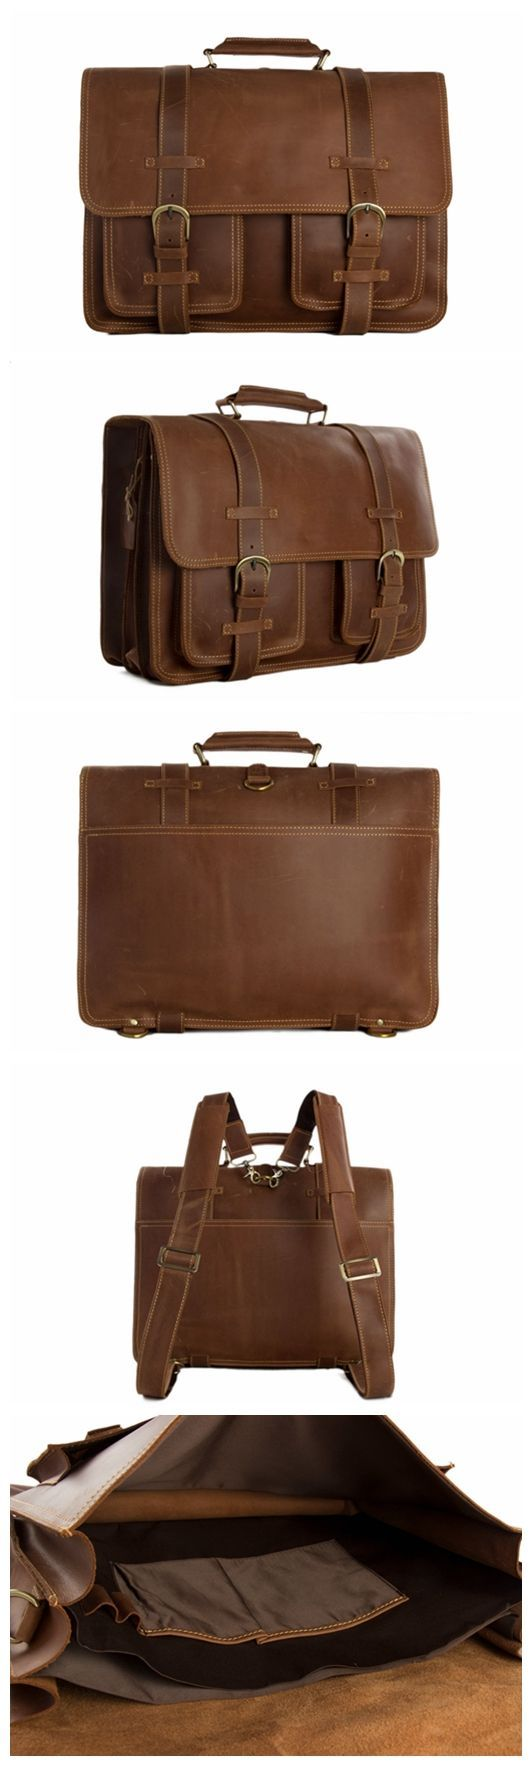 Large Functional Leather Travel Bag, Leather Duffle Bag, Leather Backpack PL340